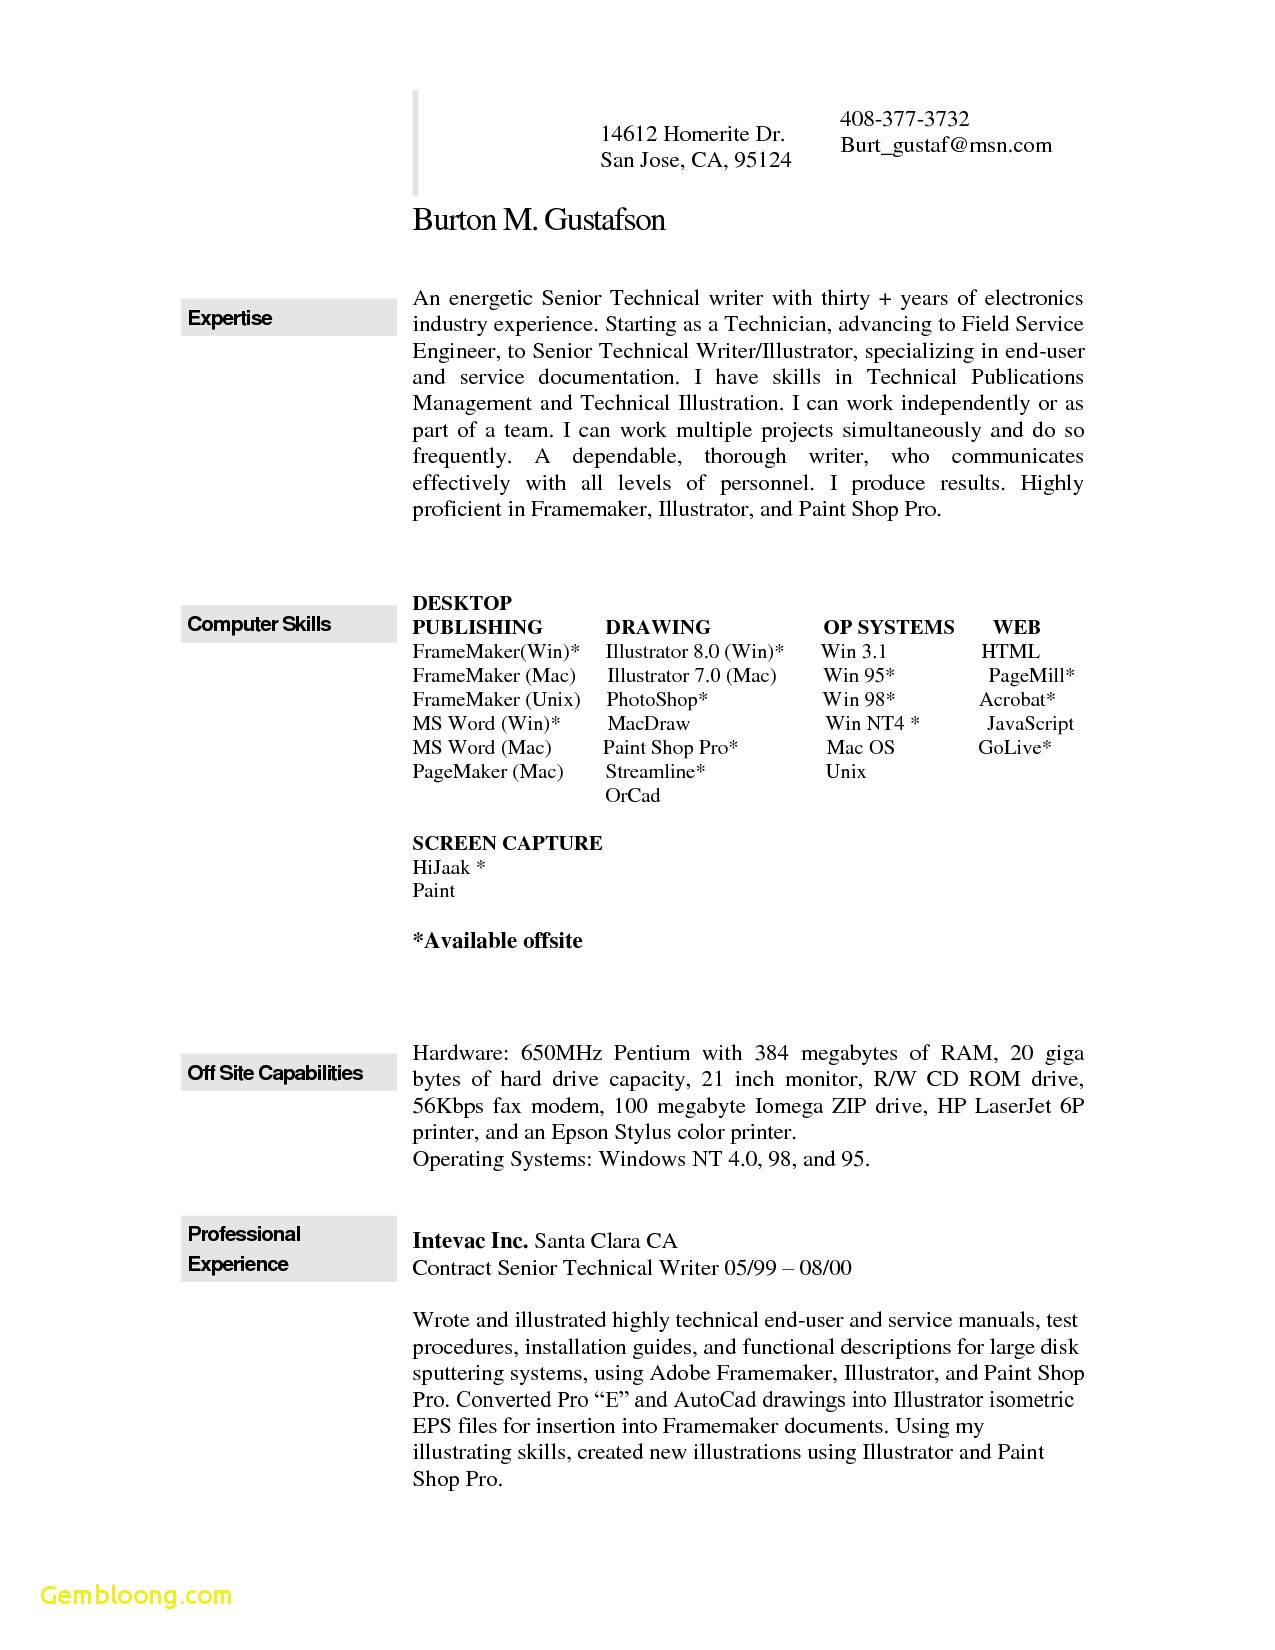 Resume Templates For Word Mac